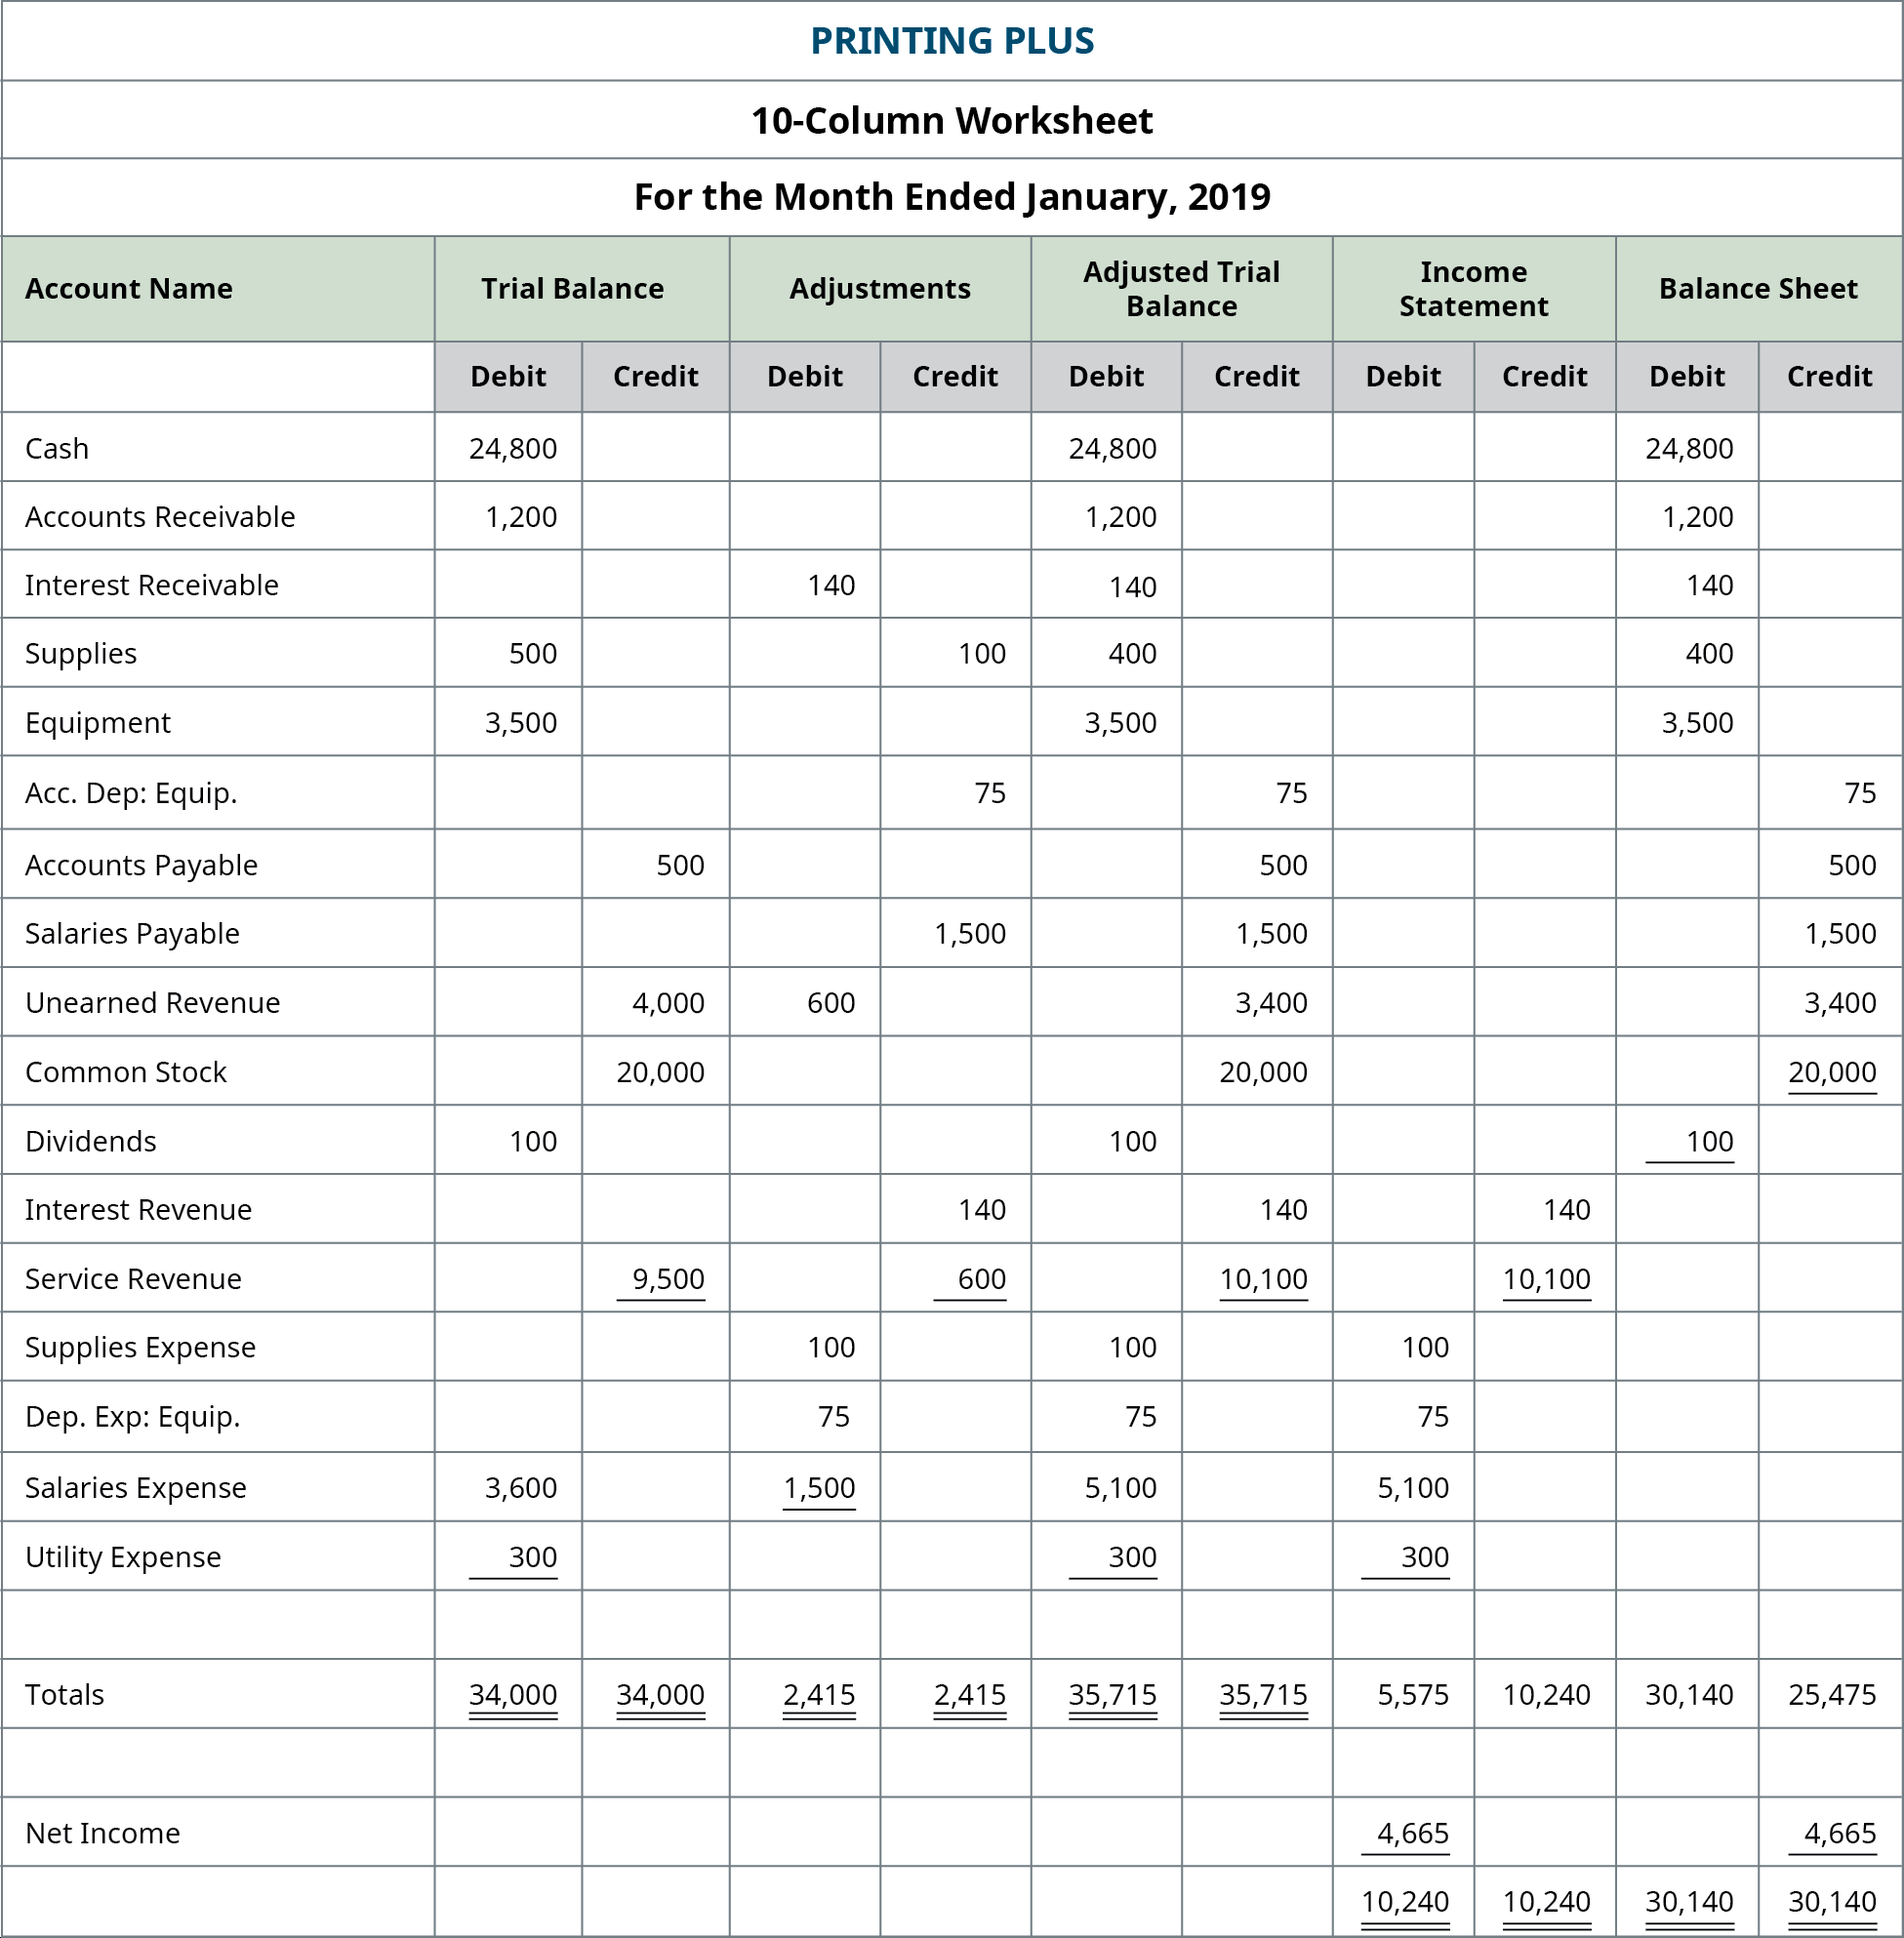 Prepare Financial Statements Using The Adjusted Trial